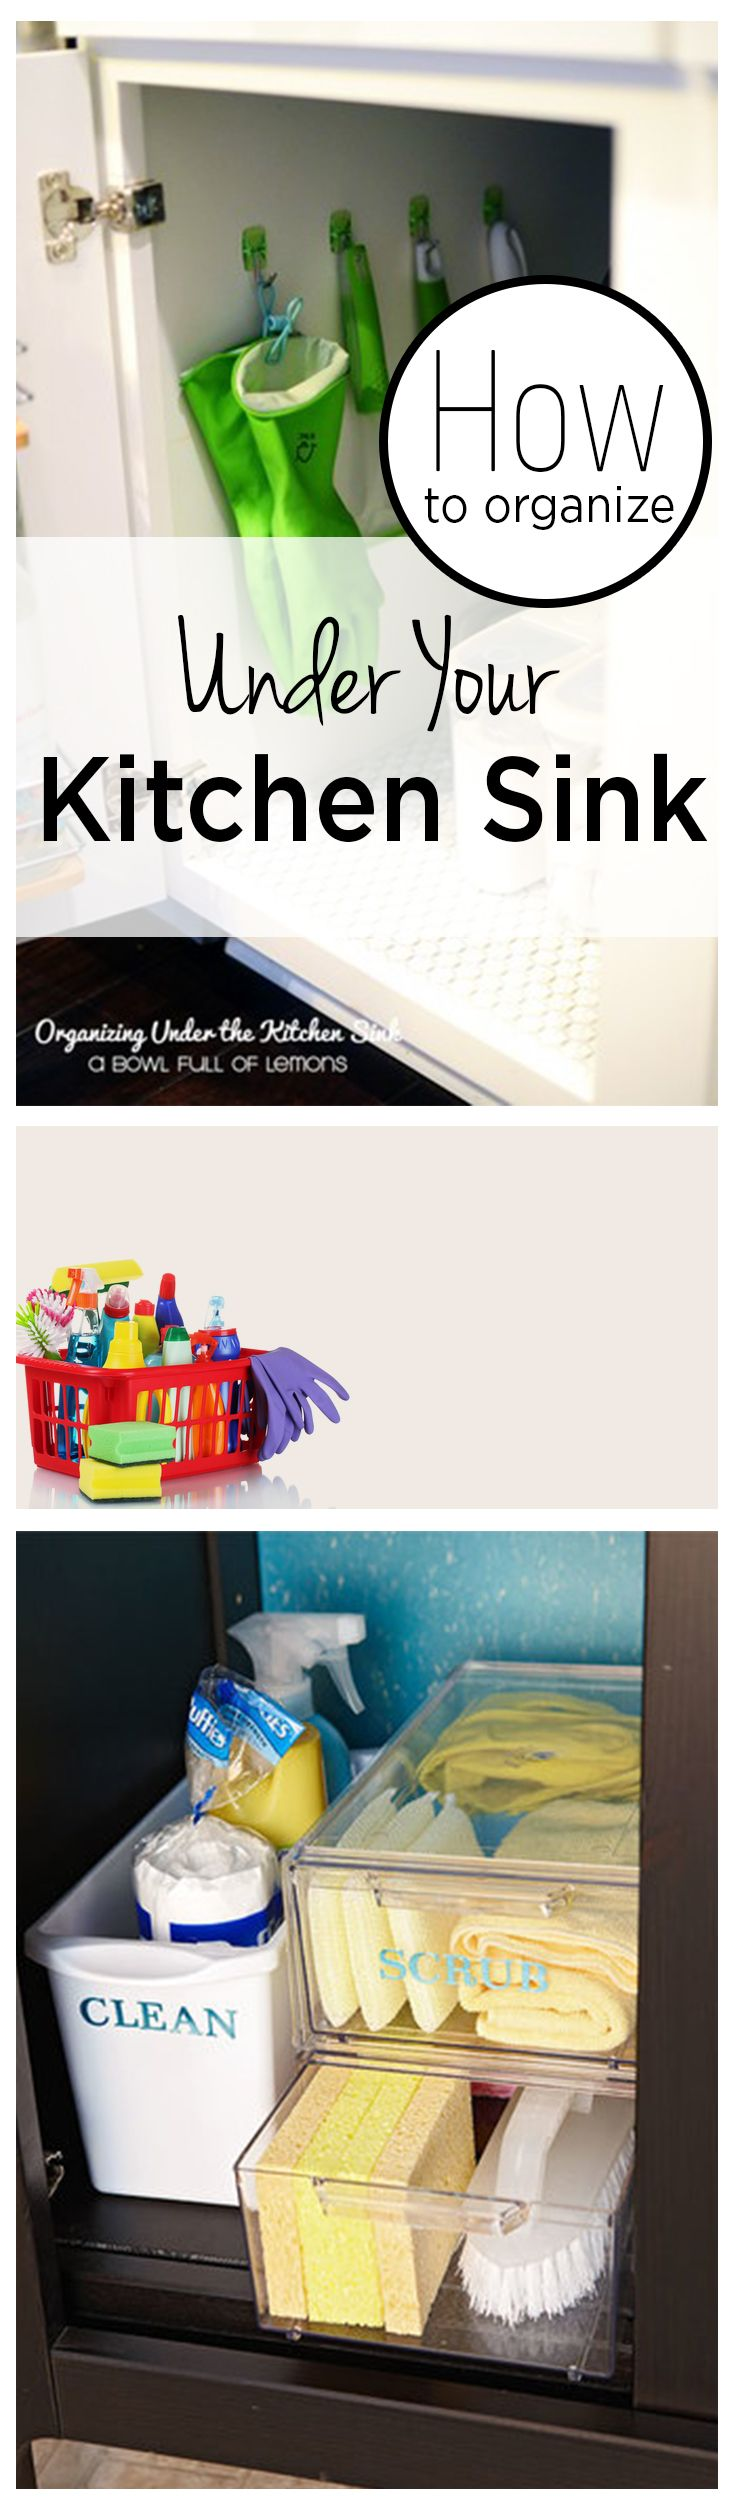 1152 best Organize images on Pinterest | Good ideas, Households and ...